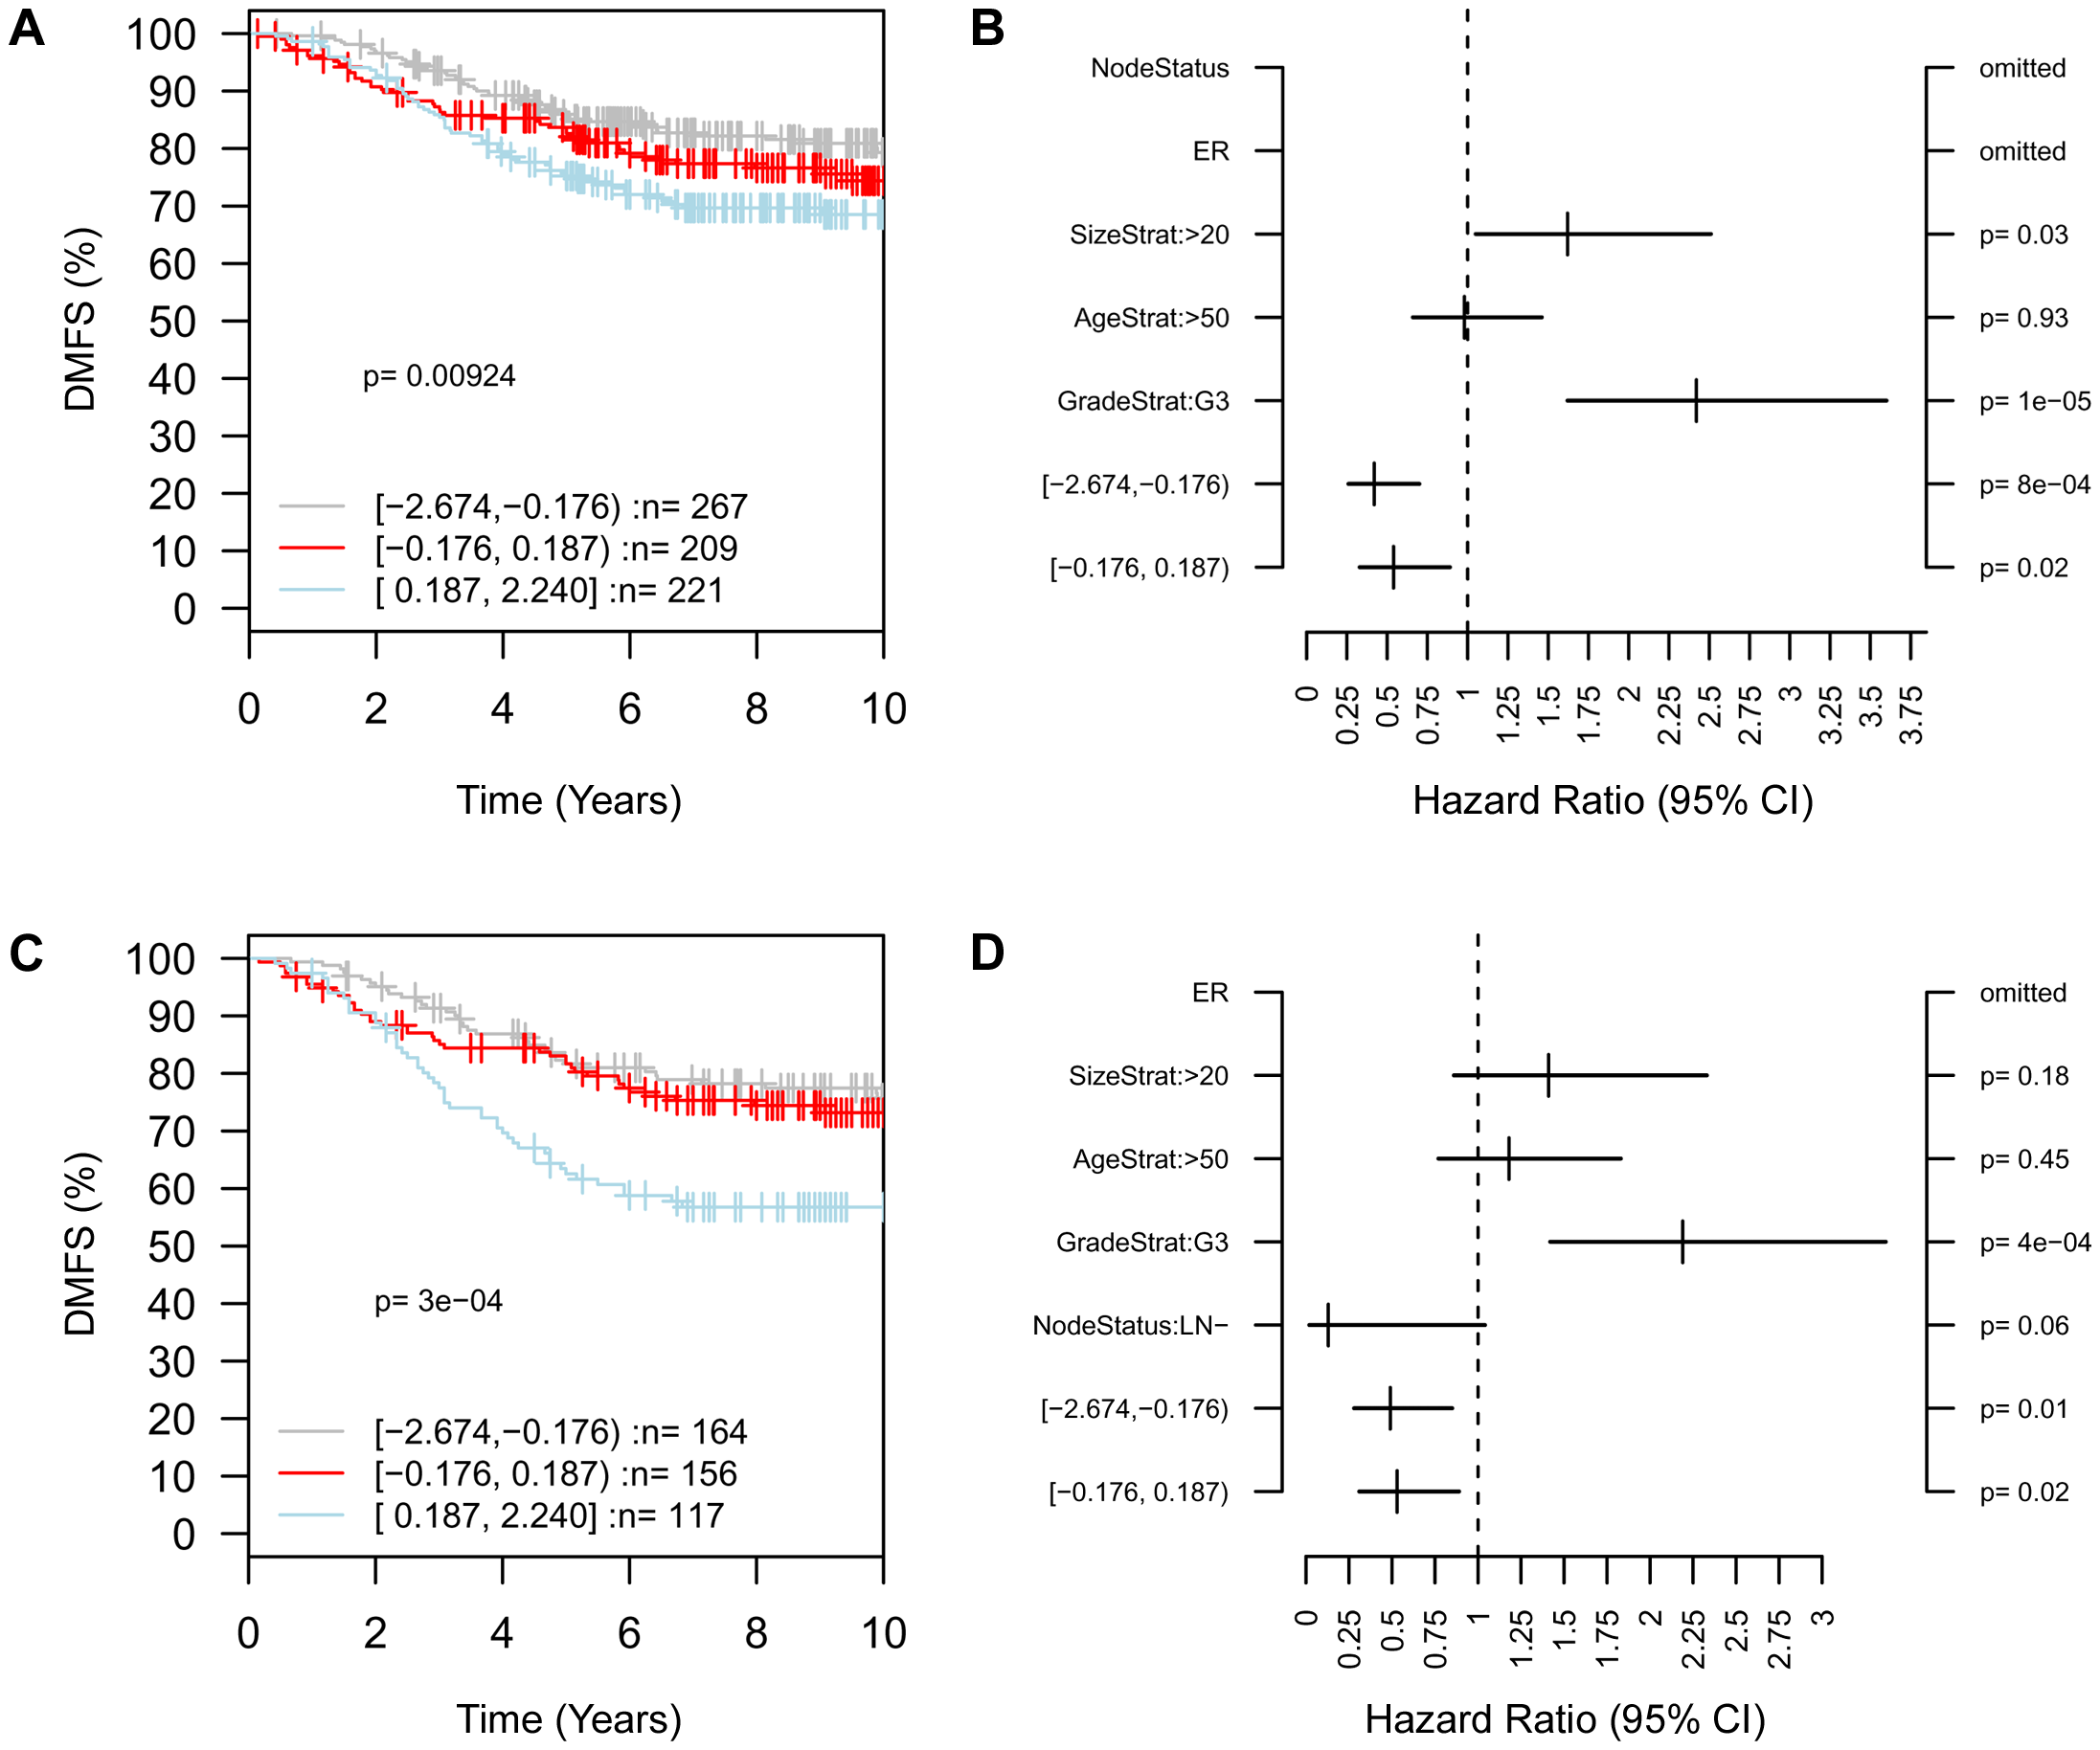 High expression of <i>ARID4B</i> is associated with poor clinical outcome.